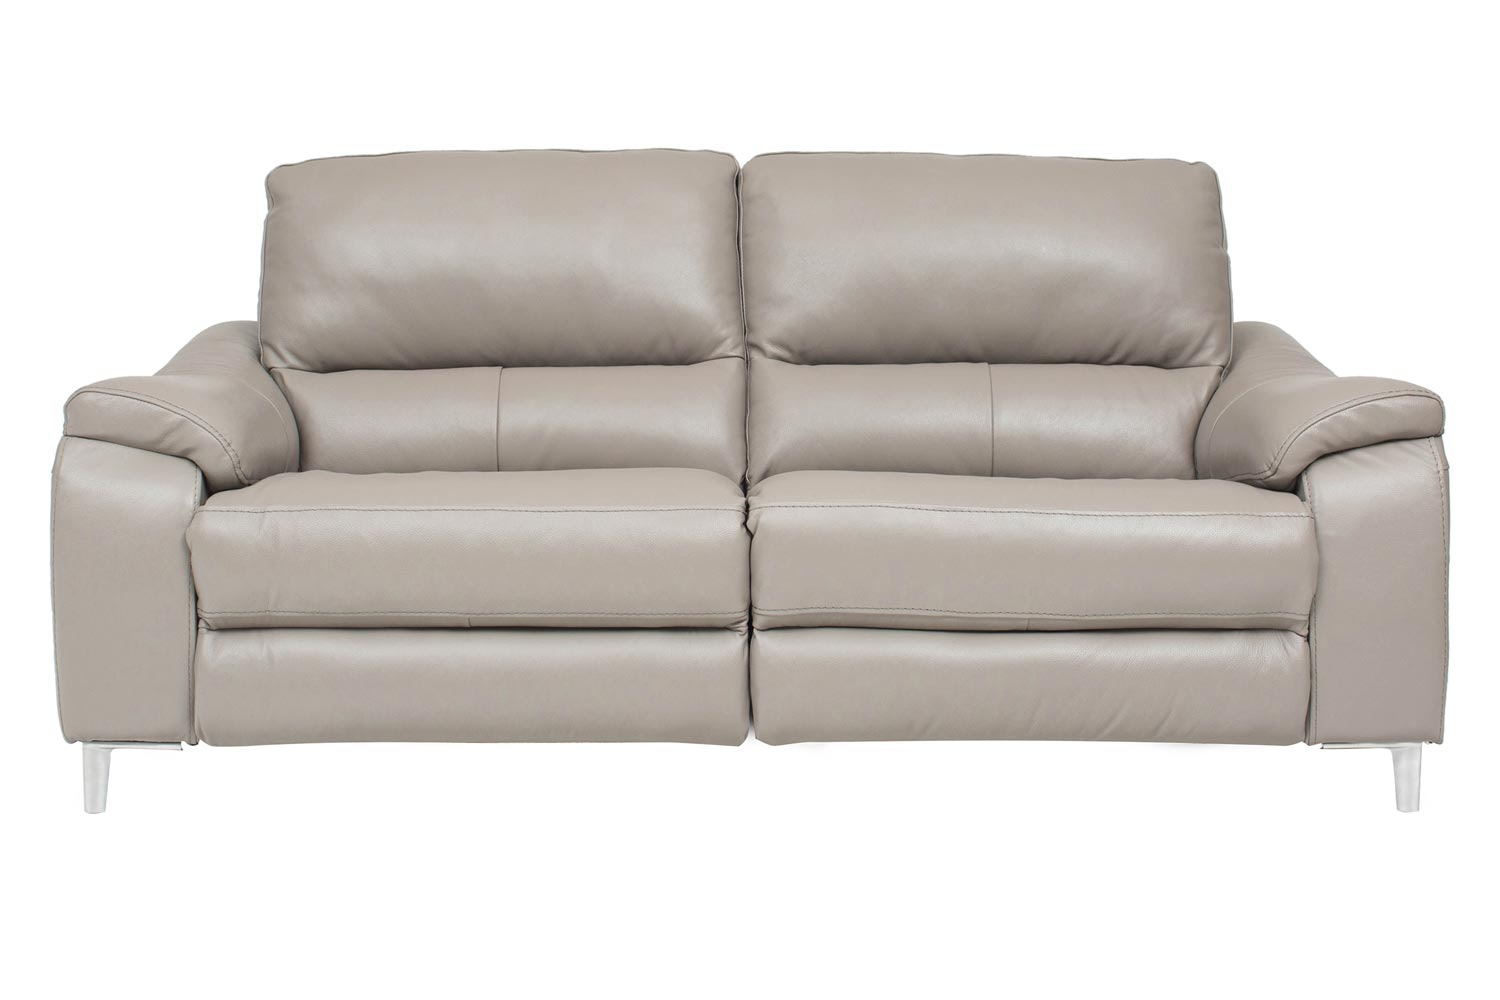 Yvezza 3 Seater Electric Recliner Sofa| 5 Colour Options